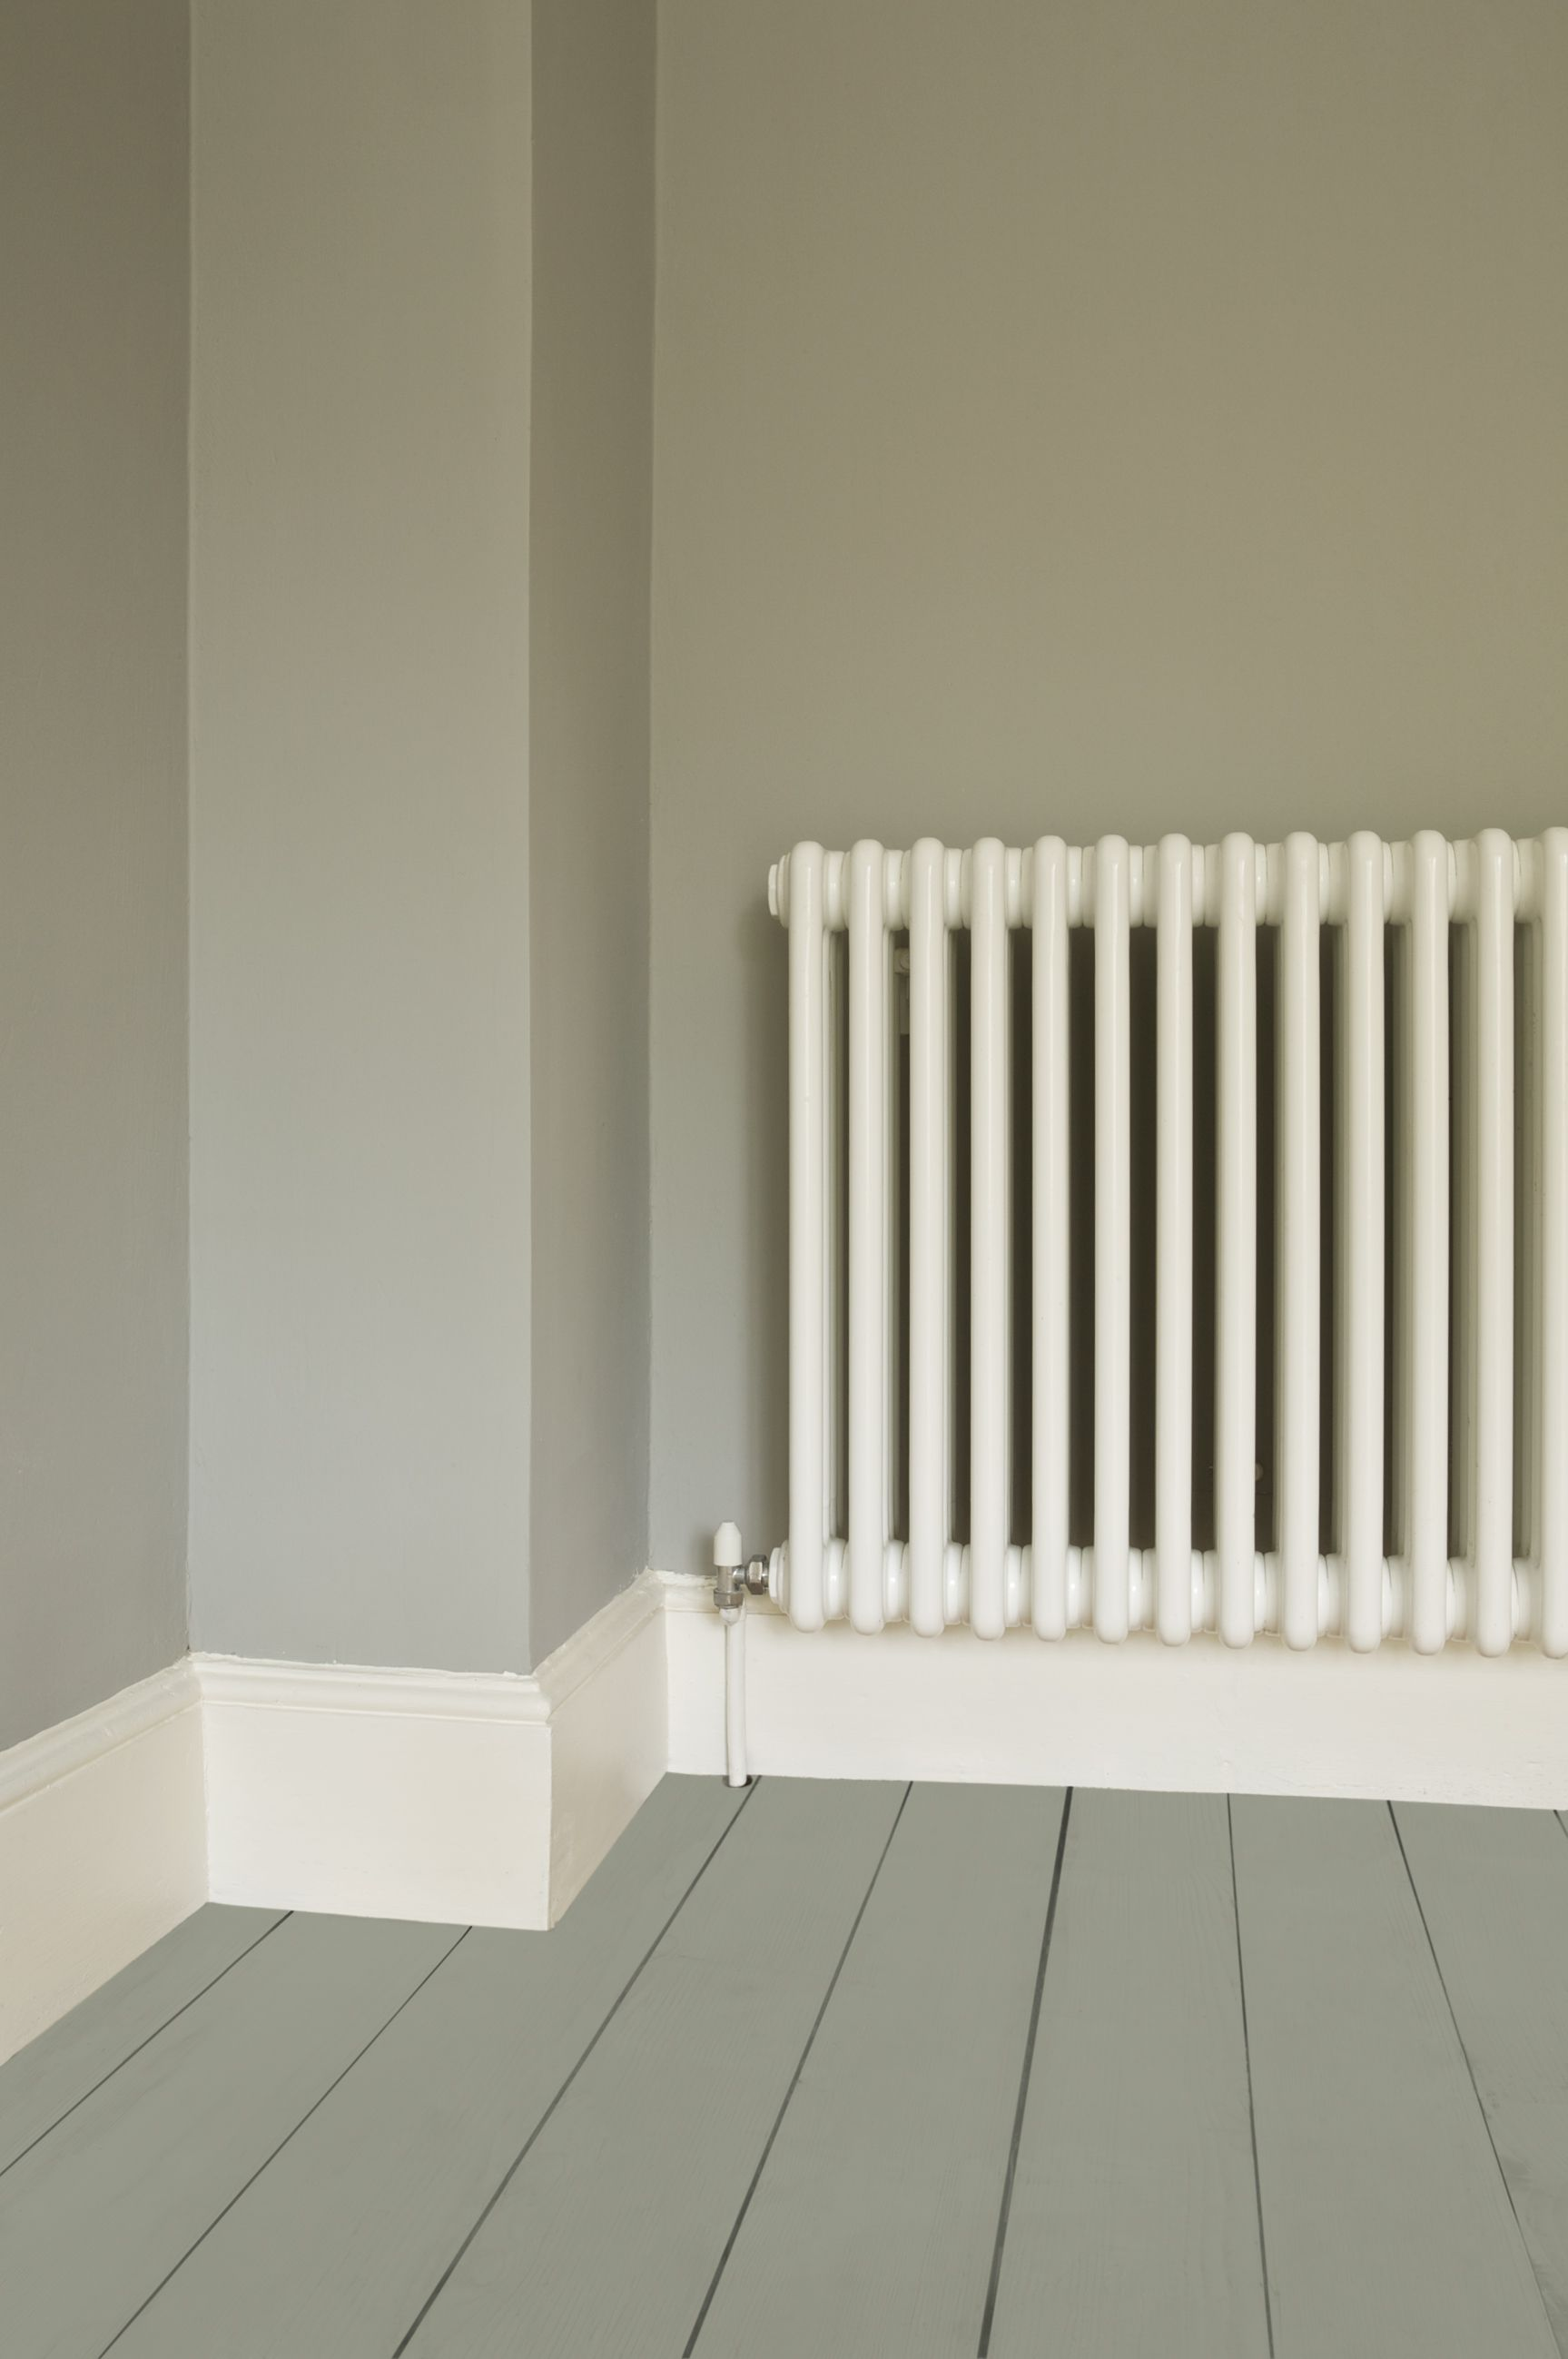 Modern country style farrow and ball pale powder colour case study - Modern Country Style Case Study Farrow And Ball Pigeon Murs Farrow Ball Lamp Room Gray Download